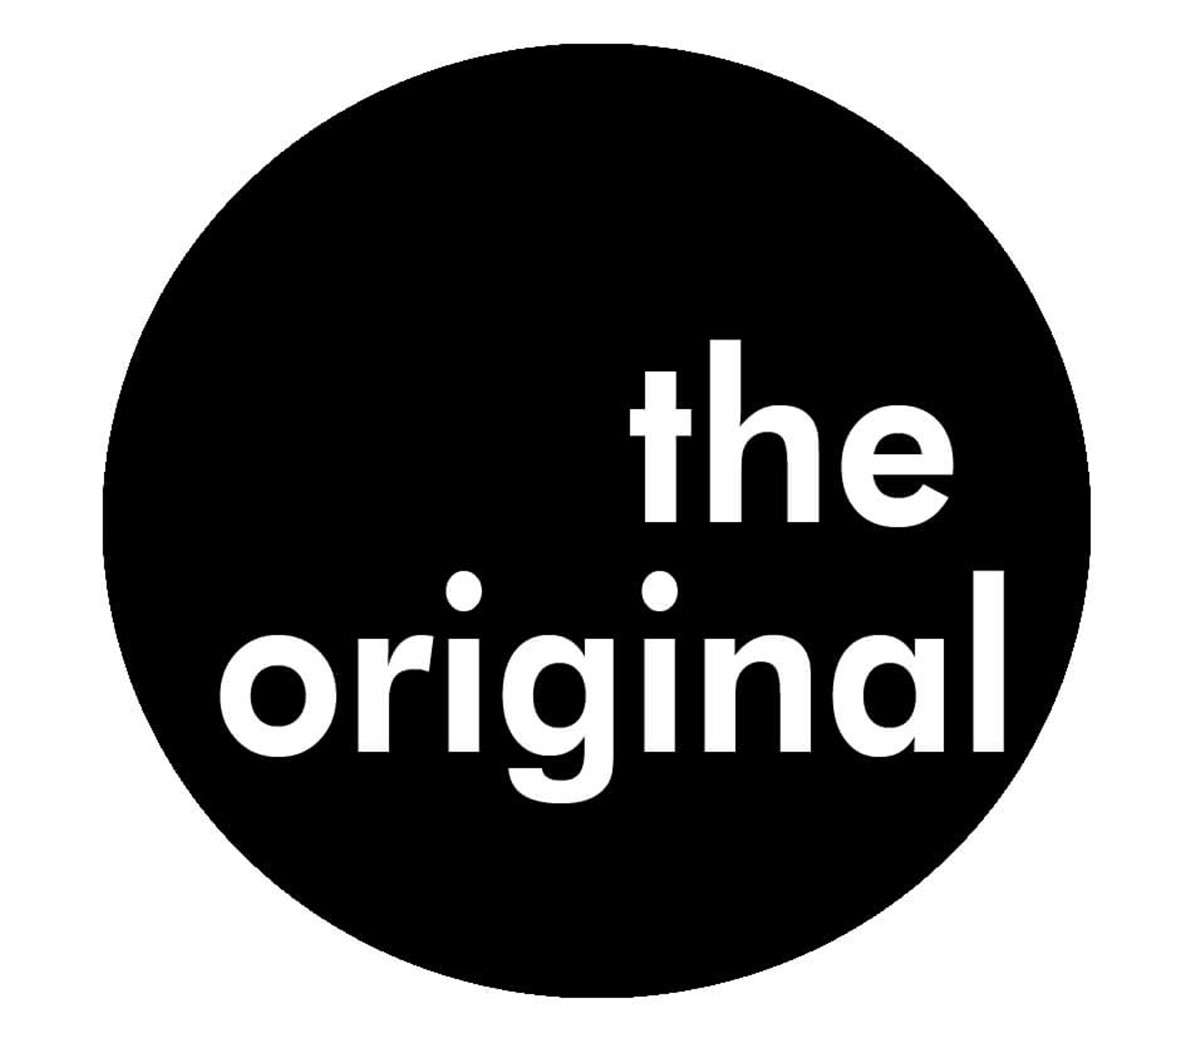 tips to name your brand: Be original